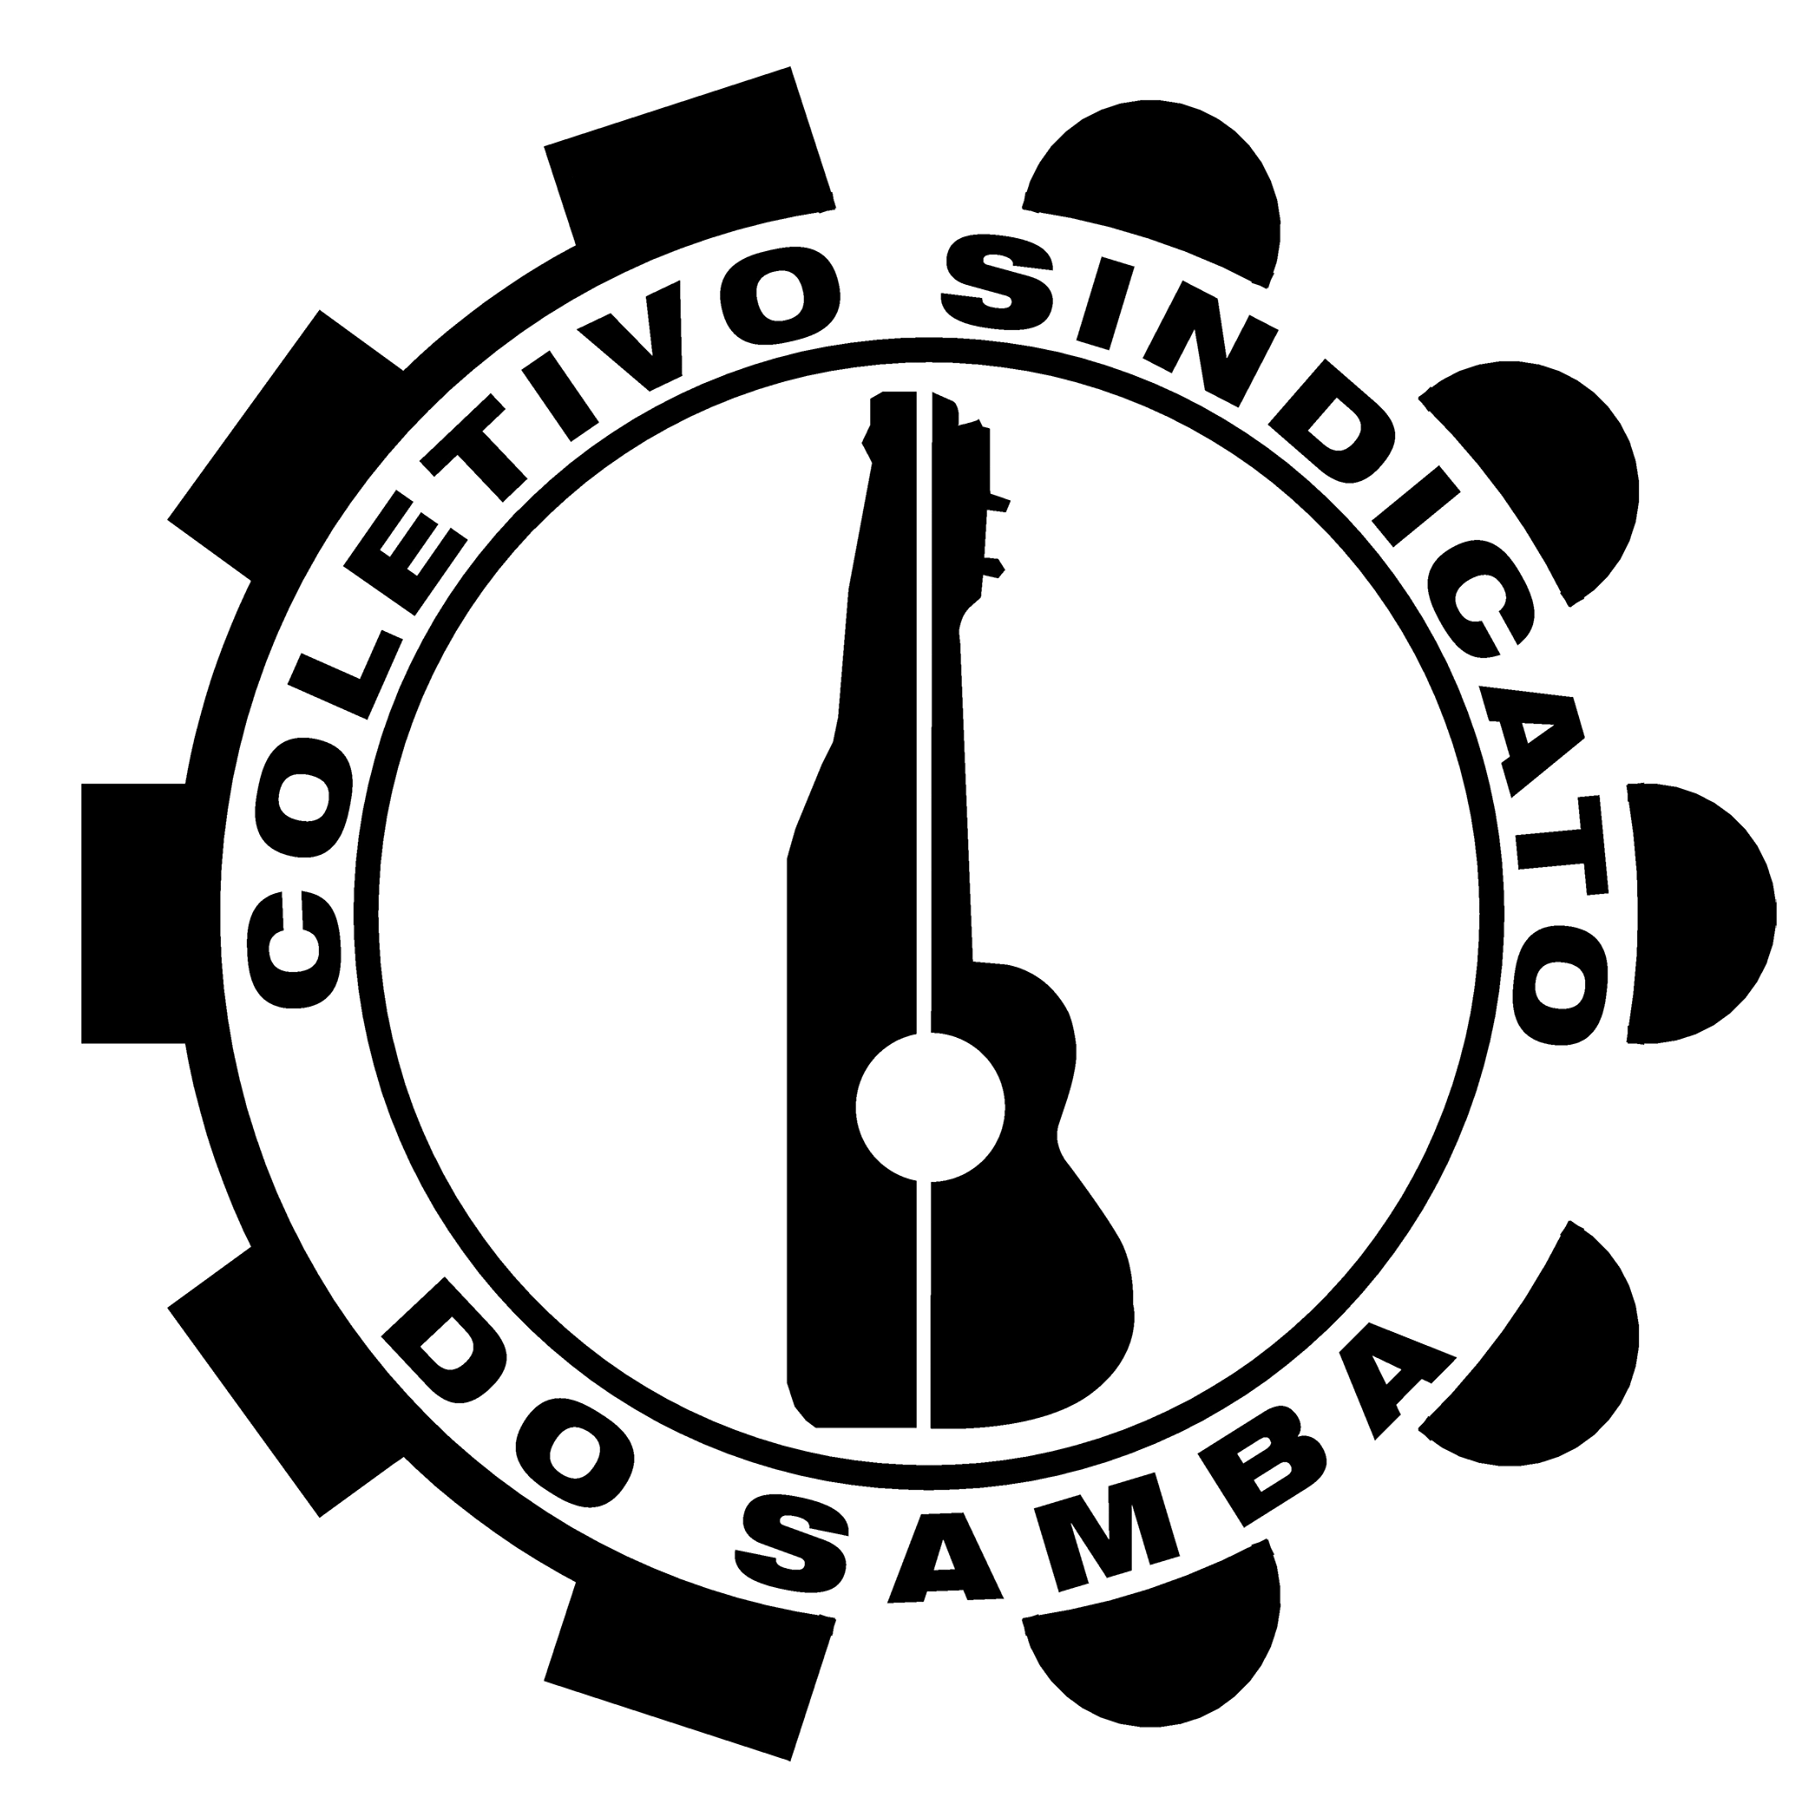 COLETIVO SINDICATO DO SAMBA